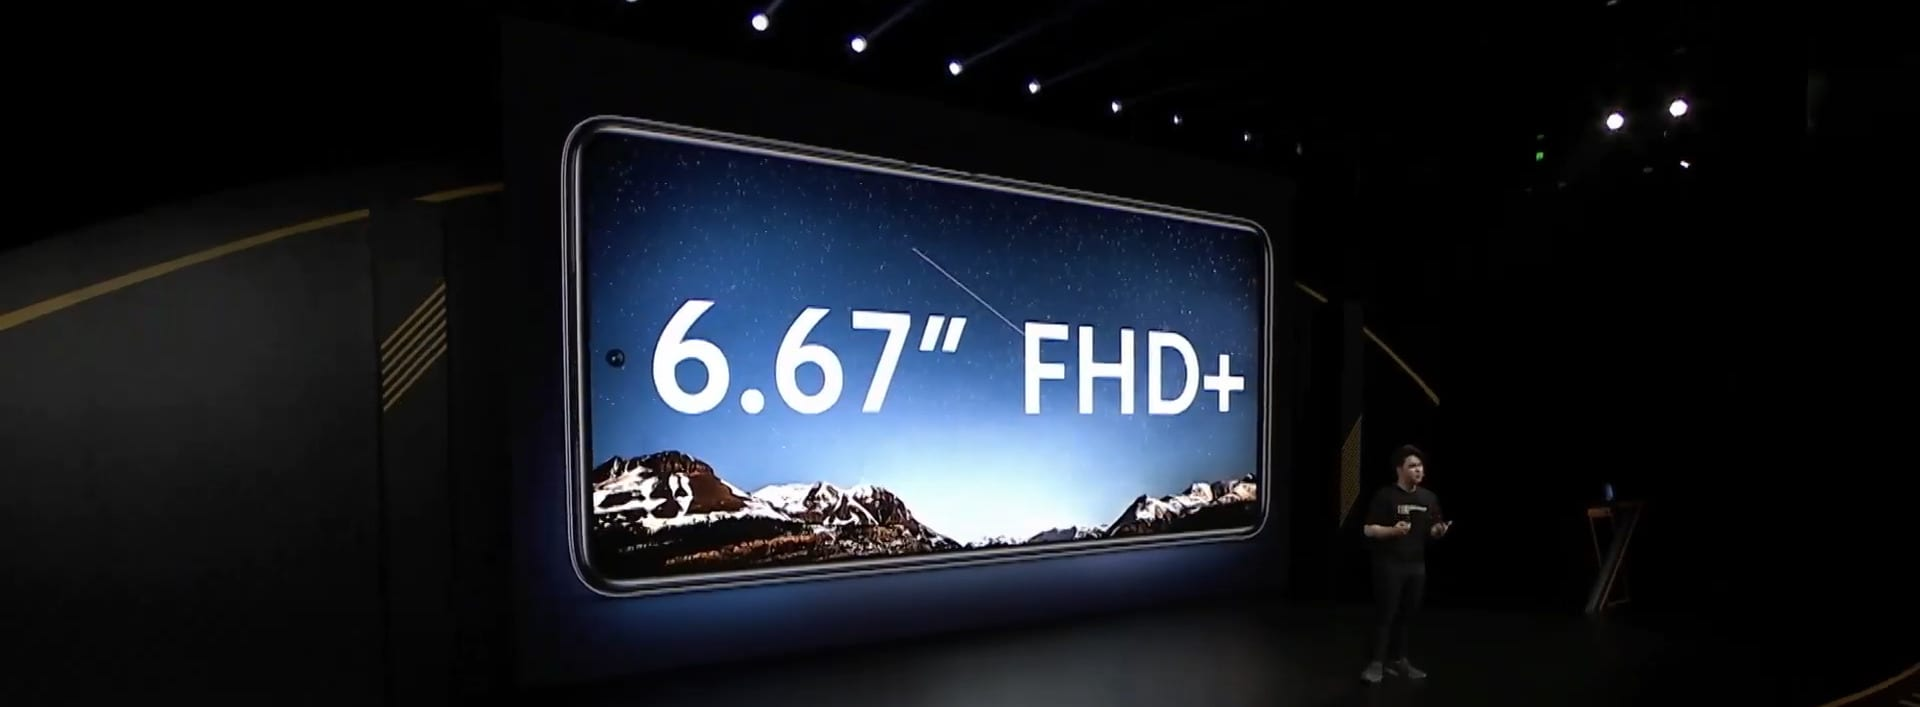 "6.67"" FHD+ Display on POCO X3"